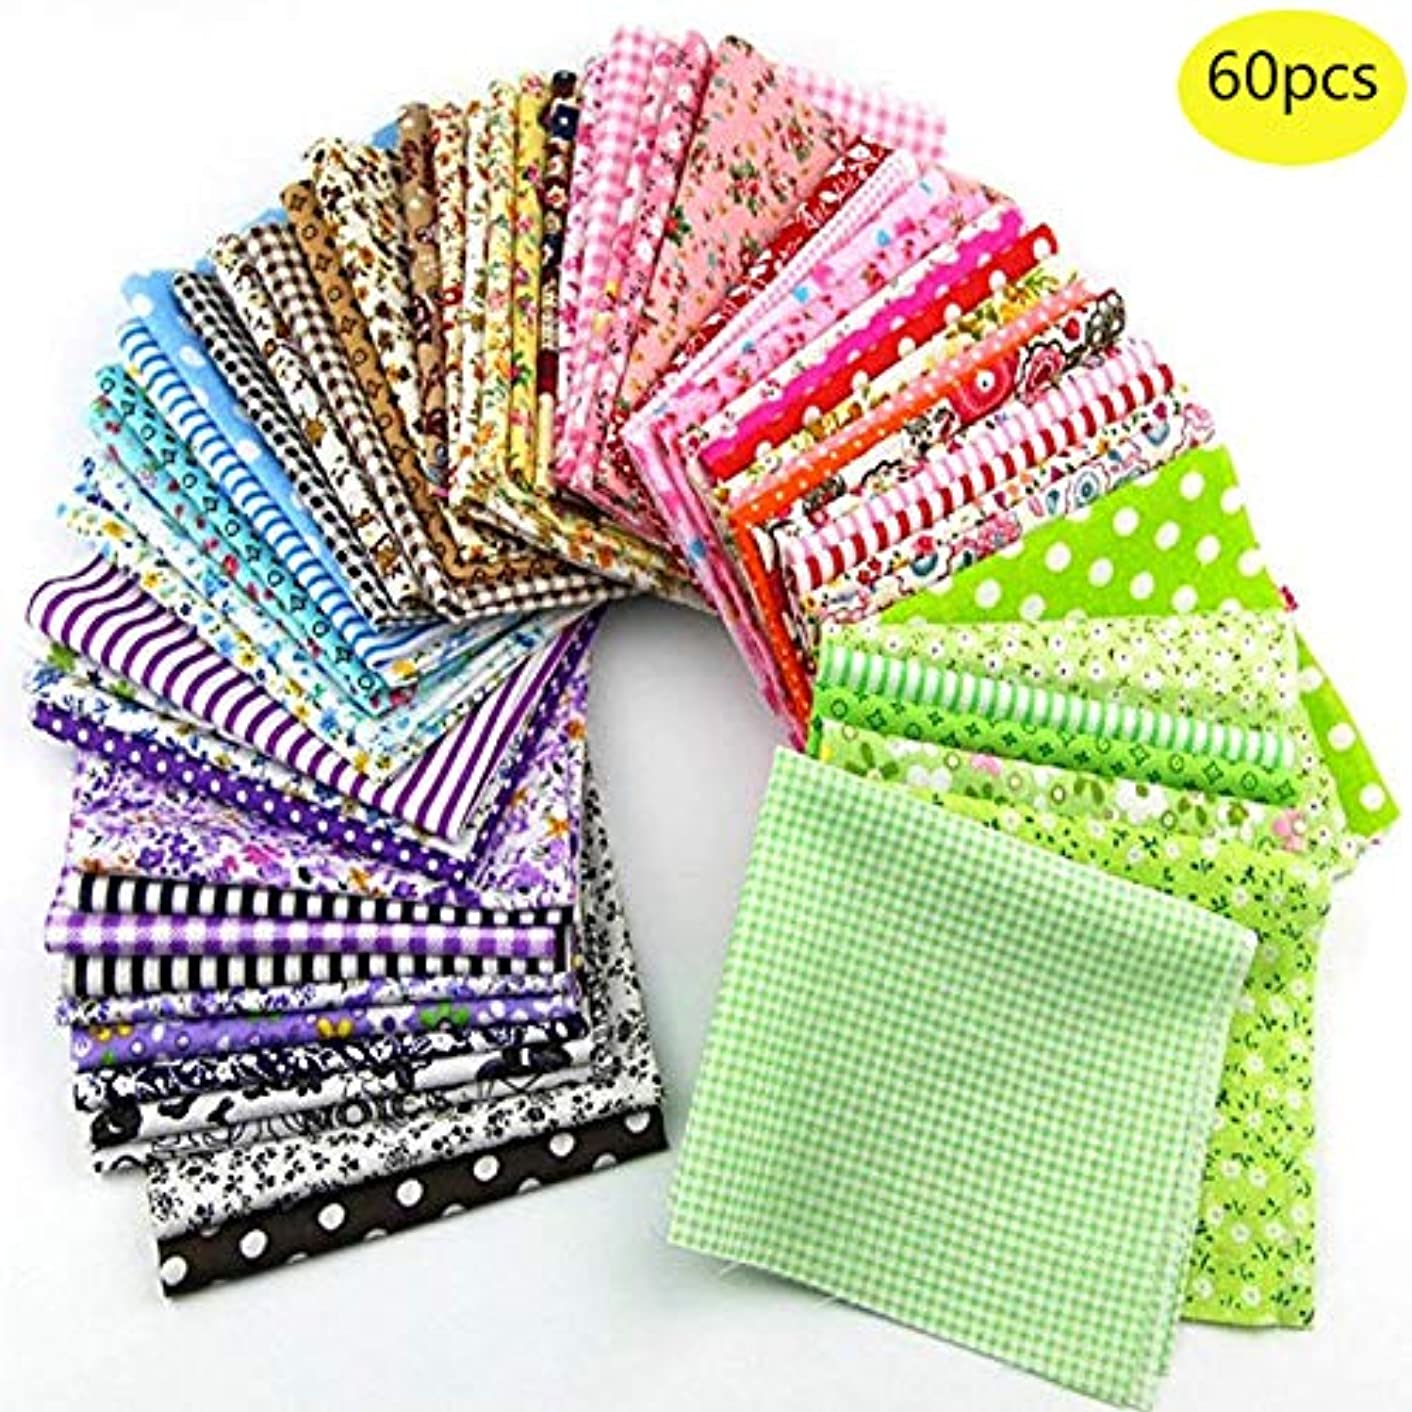 60 Pcs Assorted Craft Fabric Bundle Squares Patchwork Fabric Sets for DIY Sewing Scrapbooking Quilting Dot Pattern itbodhoq76274457